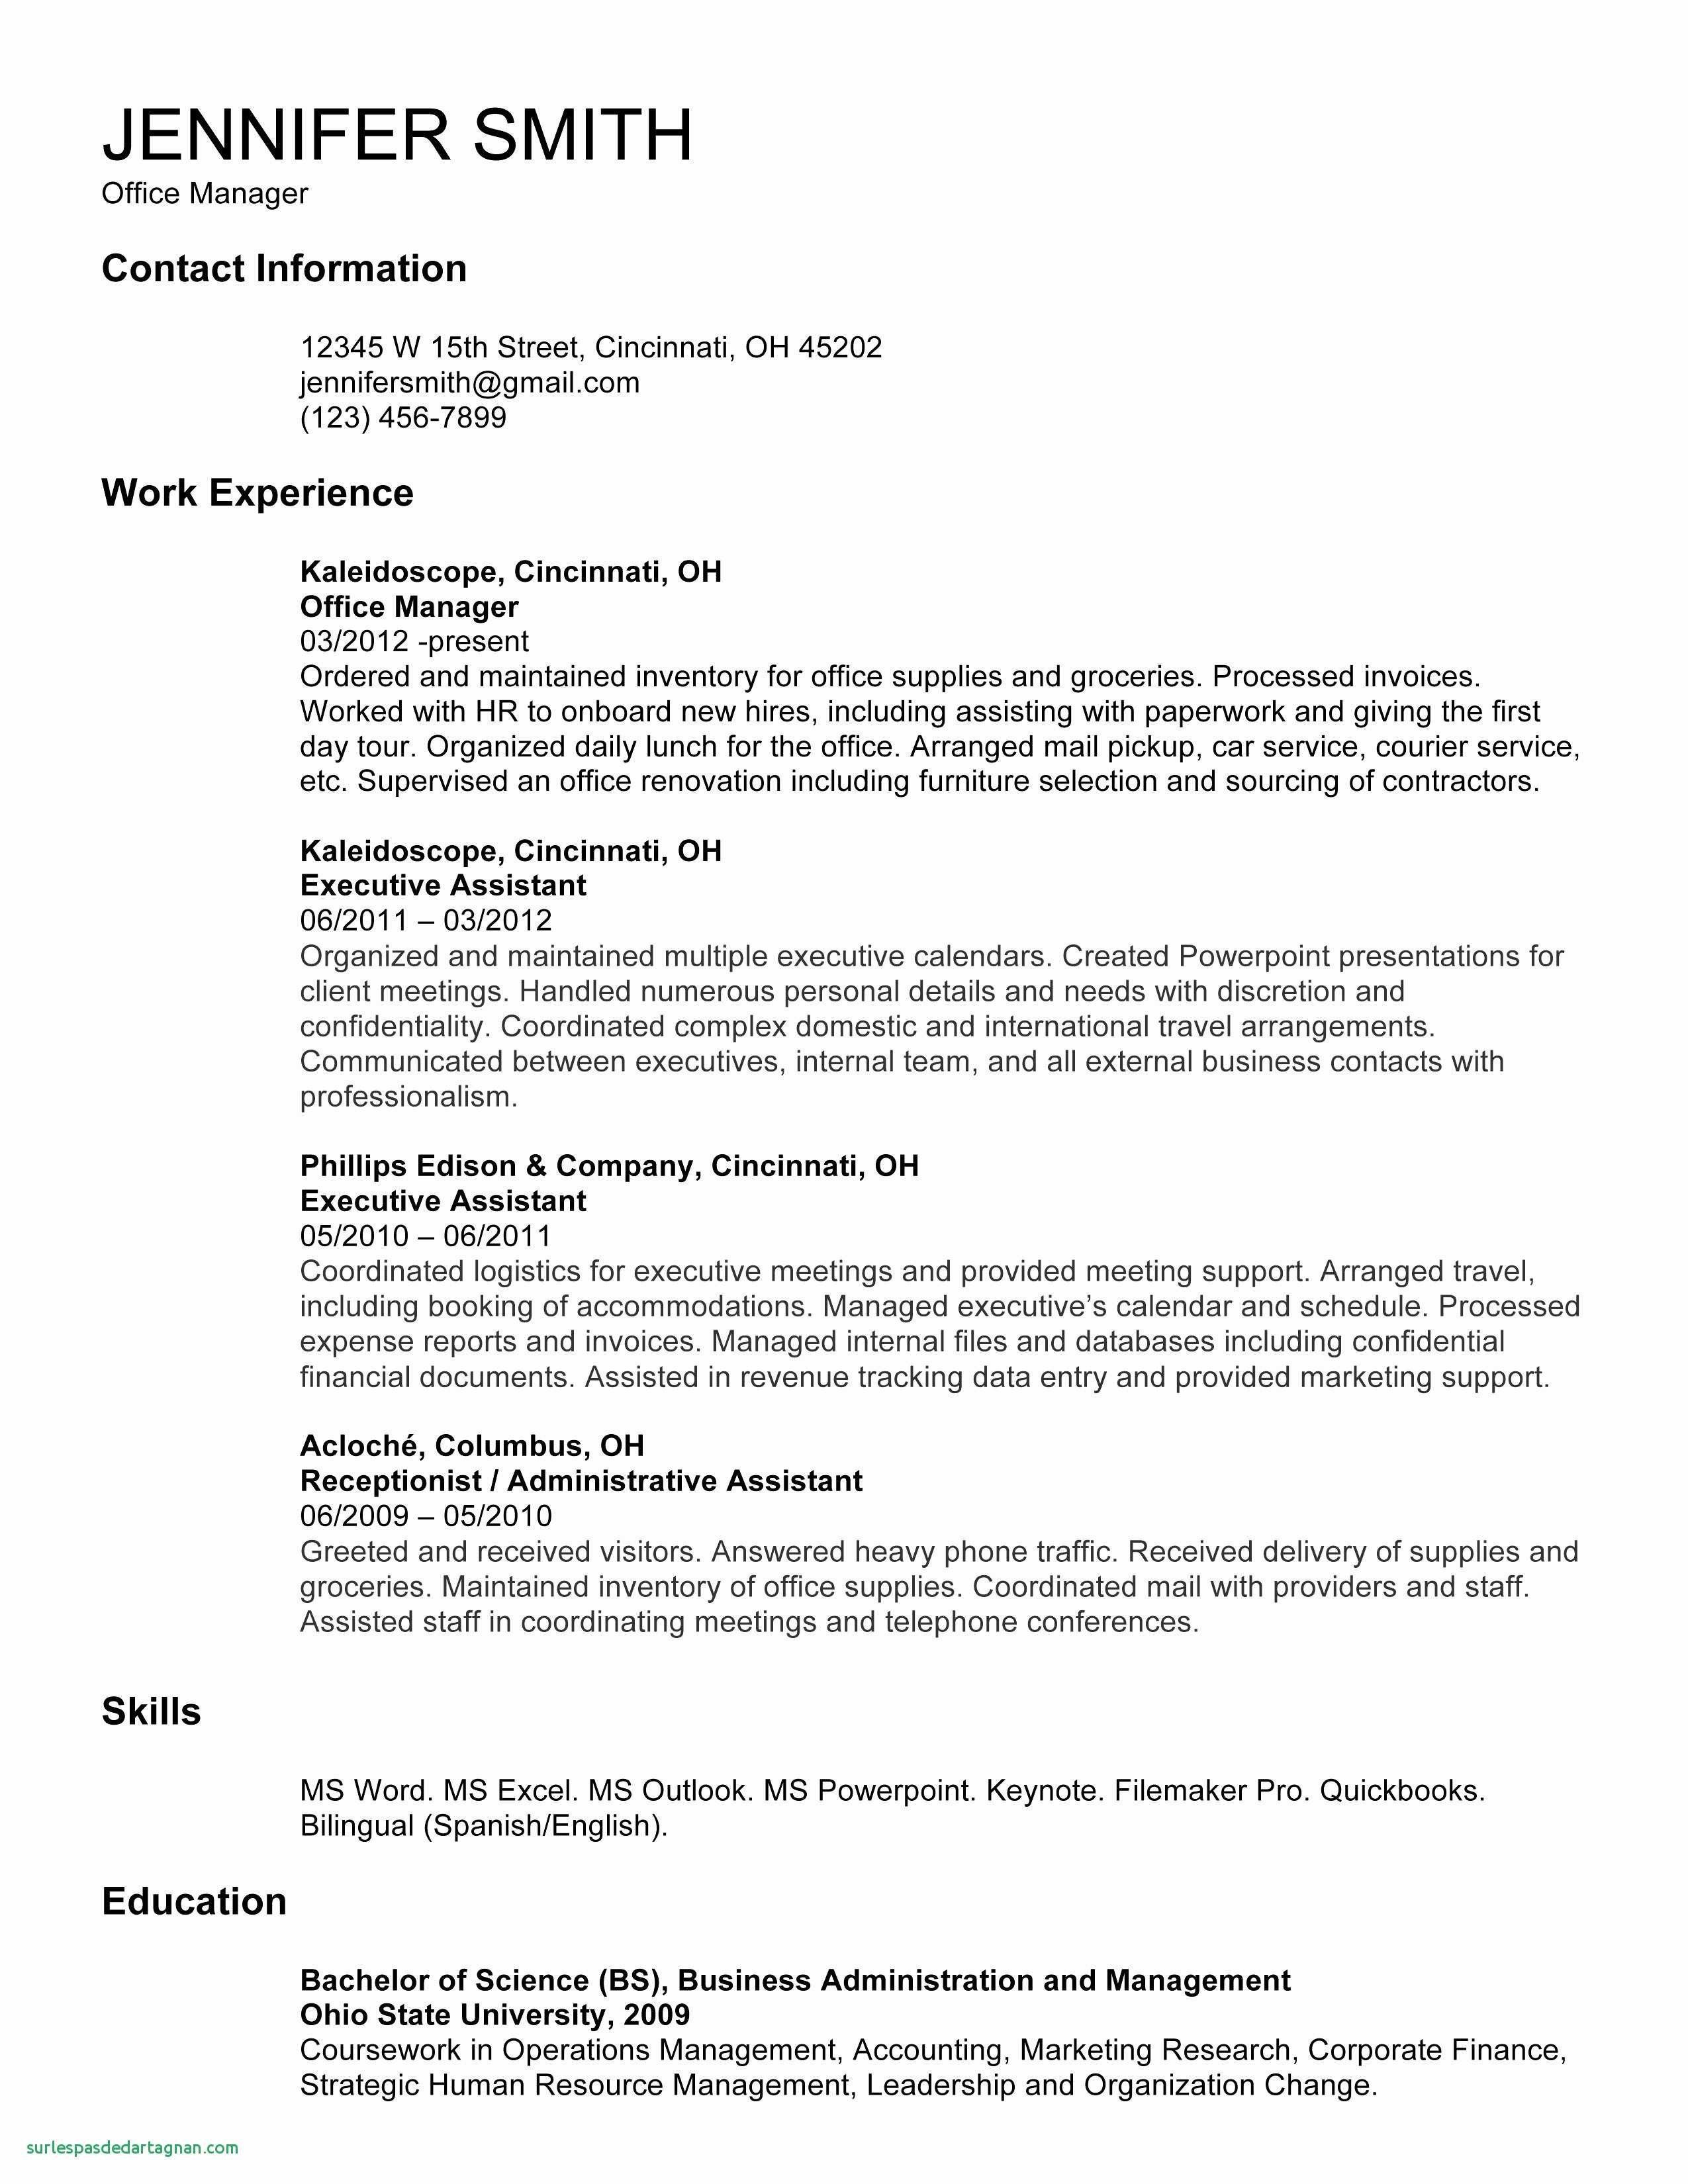 Scientist Resume Template - Resume Template Download Free Unique ¢Ë†Å¡ Resume Template Download